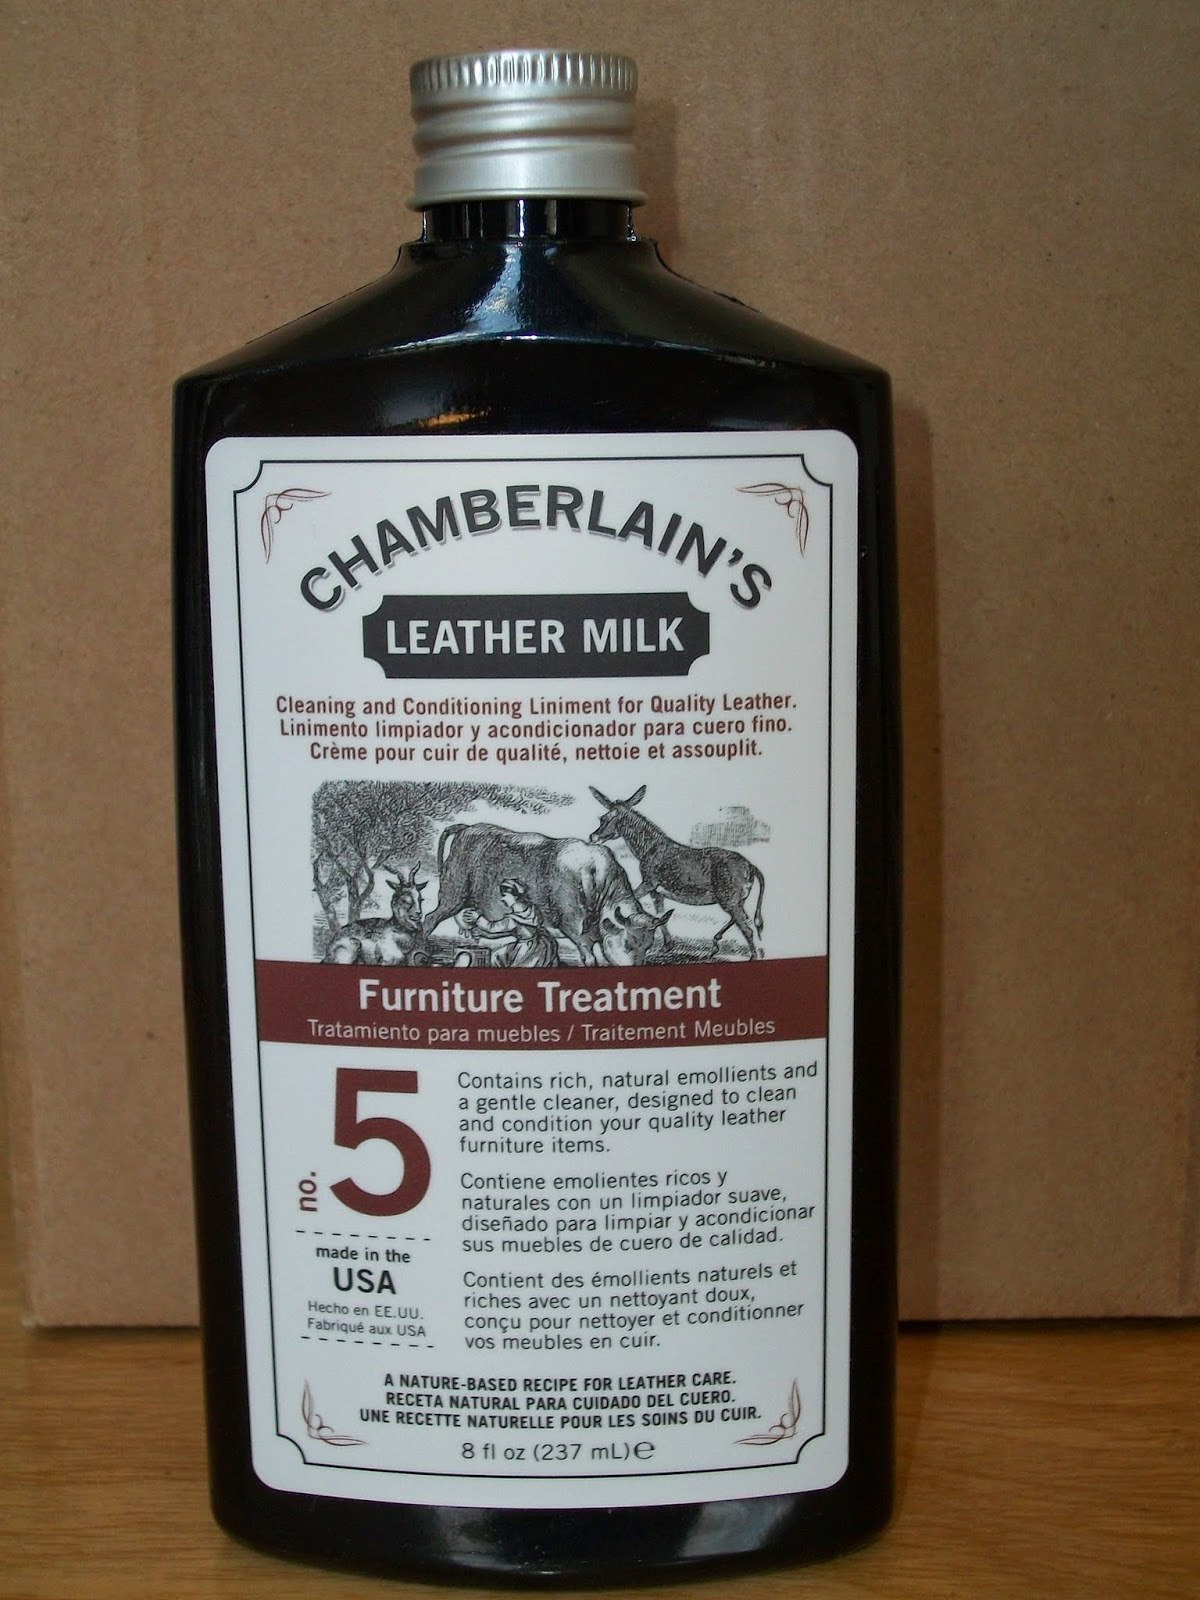 Mom Knows Best : Protect And Clean Your Leather Furniture With  Chamberlain's Leather Milk Furniture Treatment No. 5 Leather Conditioner